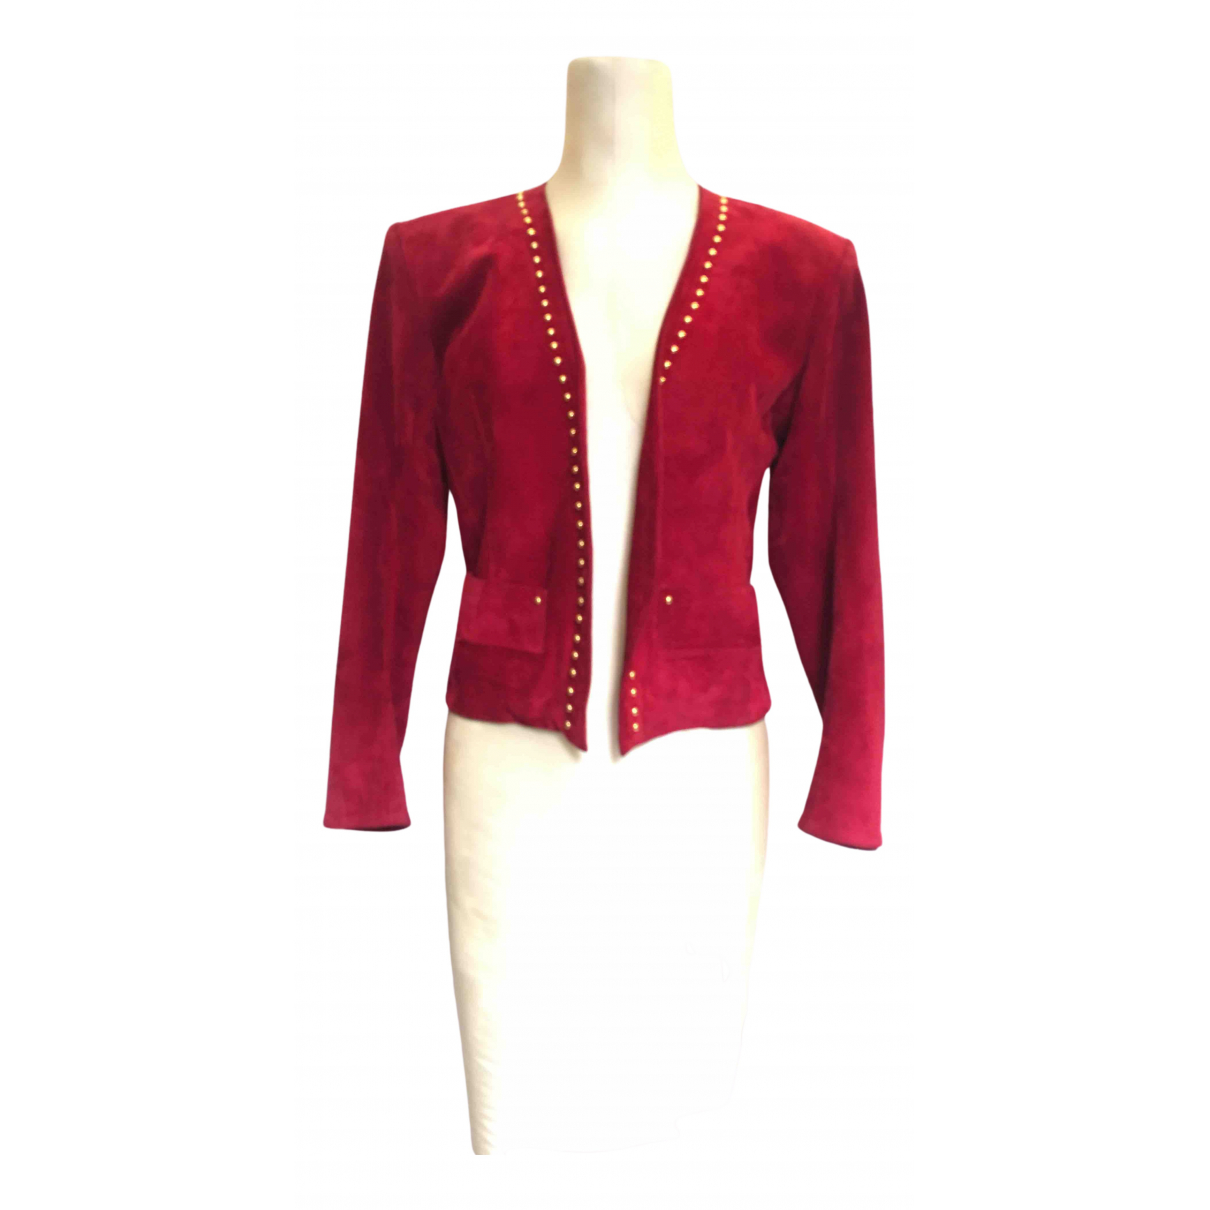 Yves Saint Laurent \N Red Suede Leather jacket for Women 36 FR